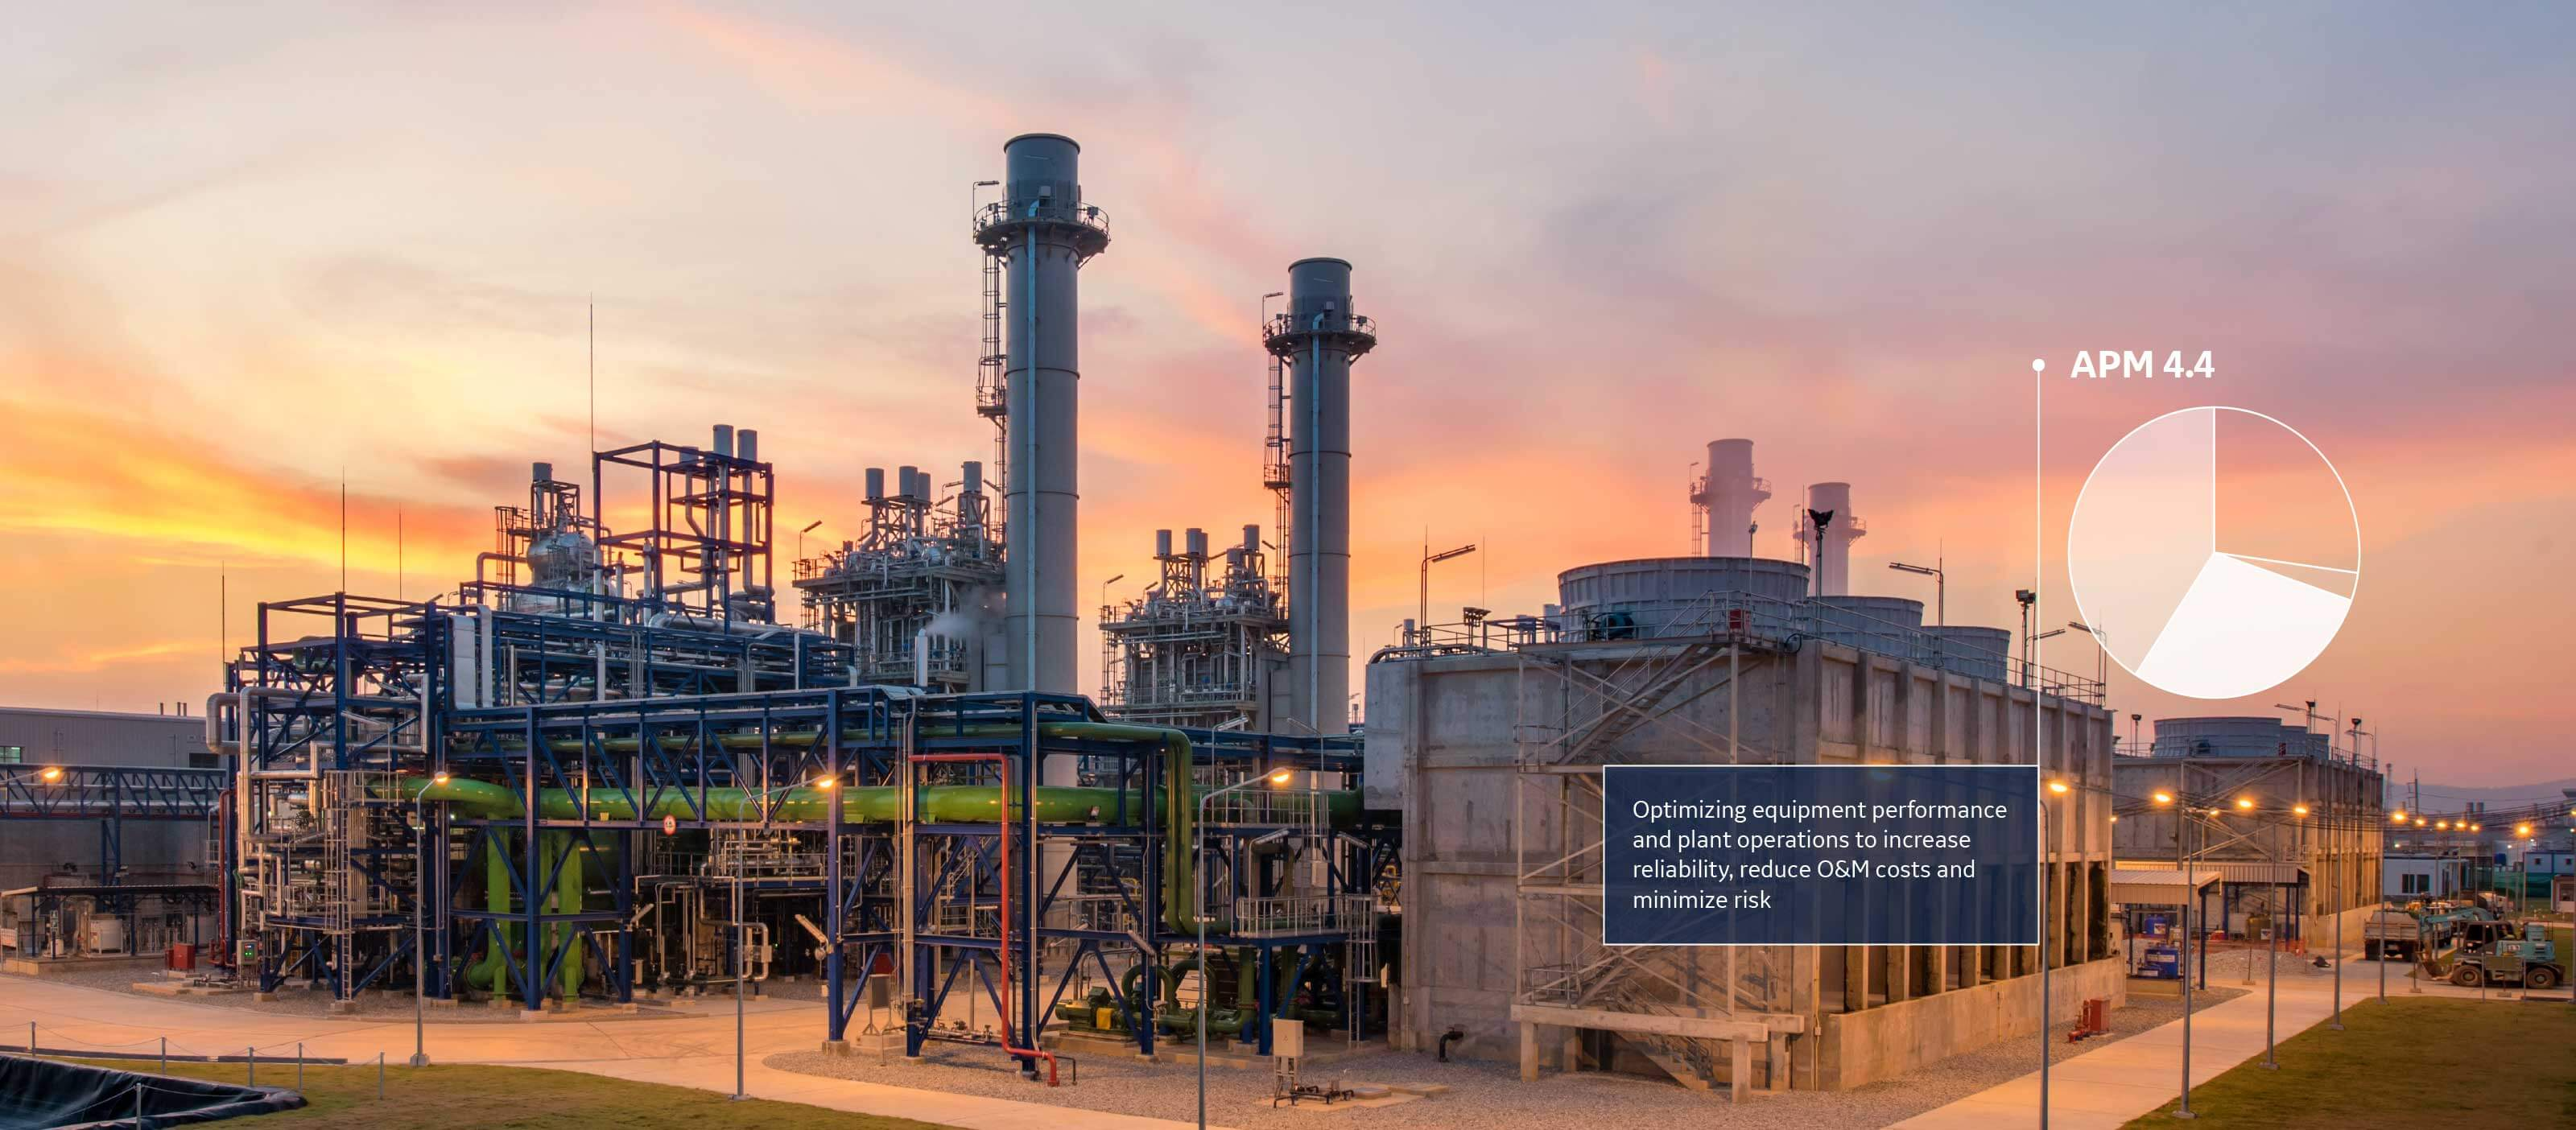 Asset Performance Management (APM) software from GE Digital helps the Oil & Gas industry maintain performance